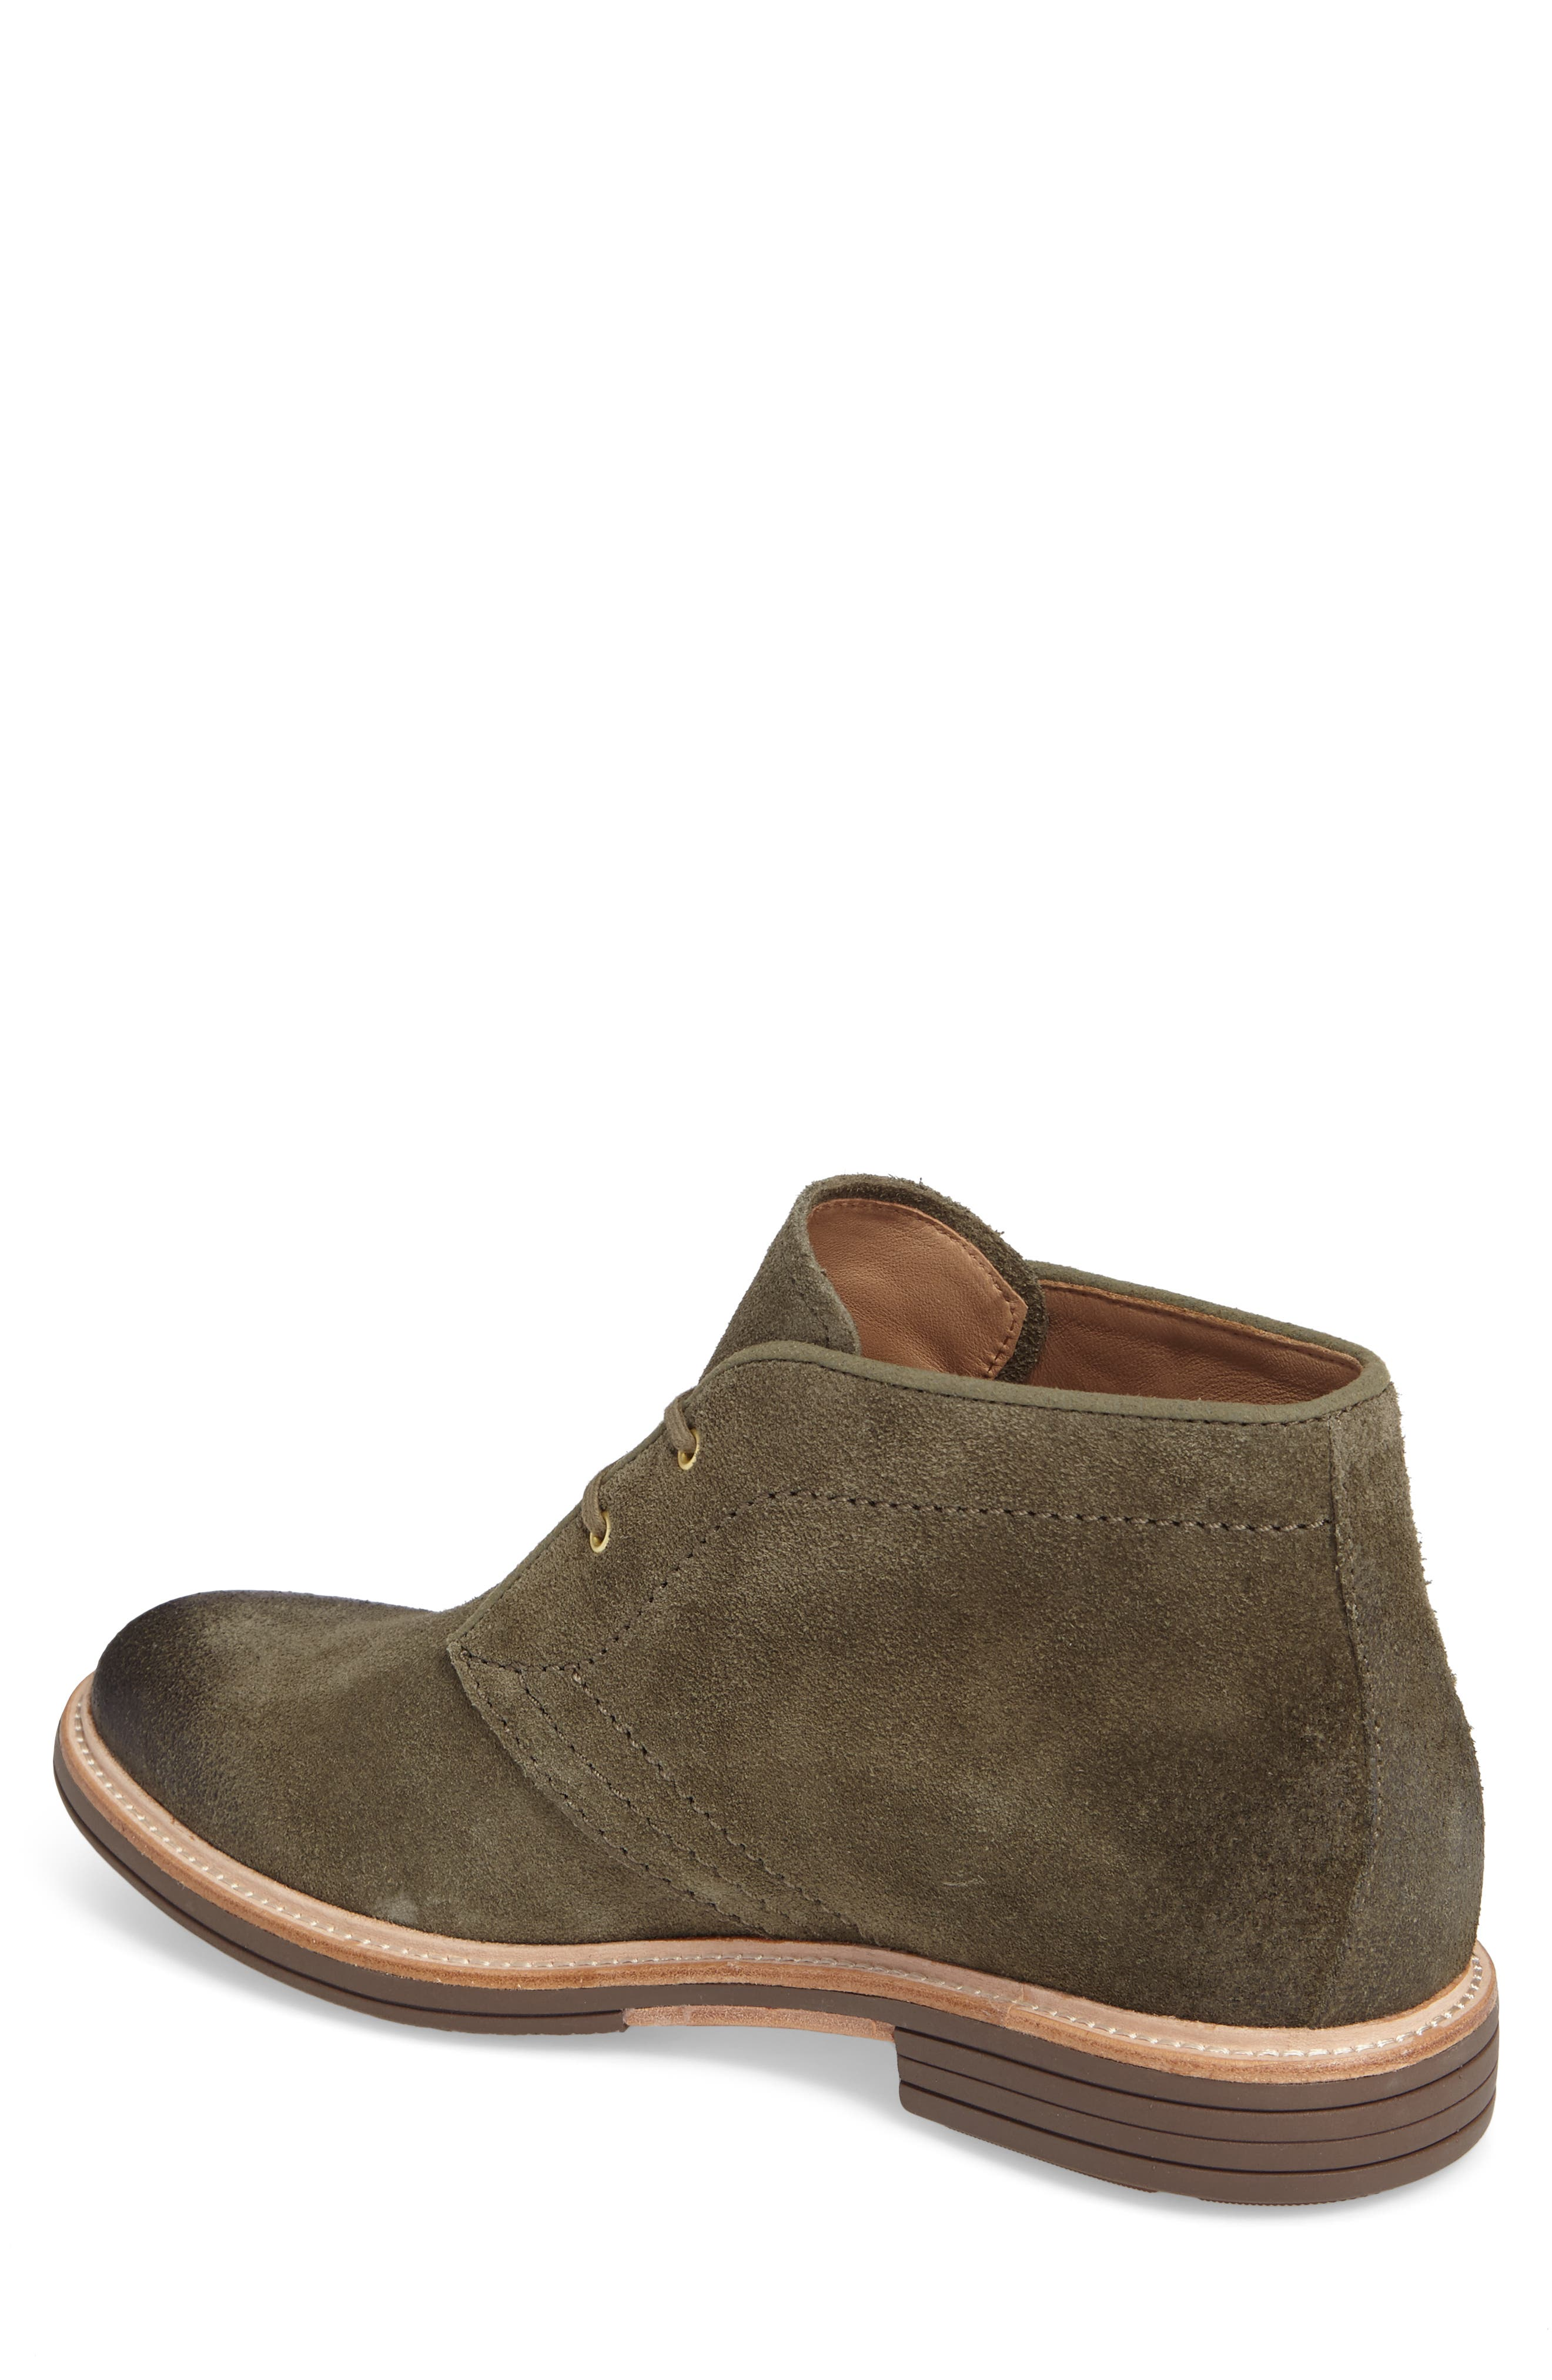 Australia Dagmann Chukka Boot,                             Alternate thumbnail 2, color,                             Olive